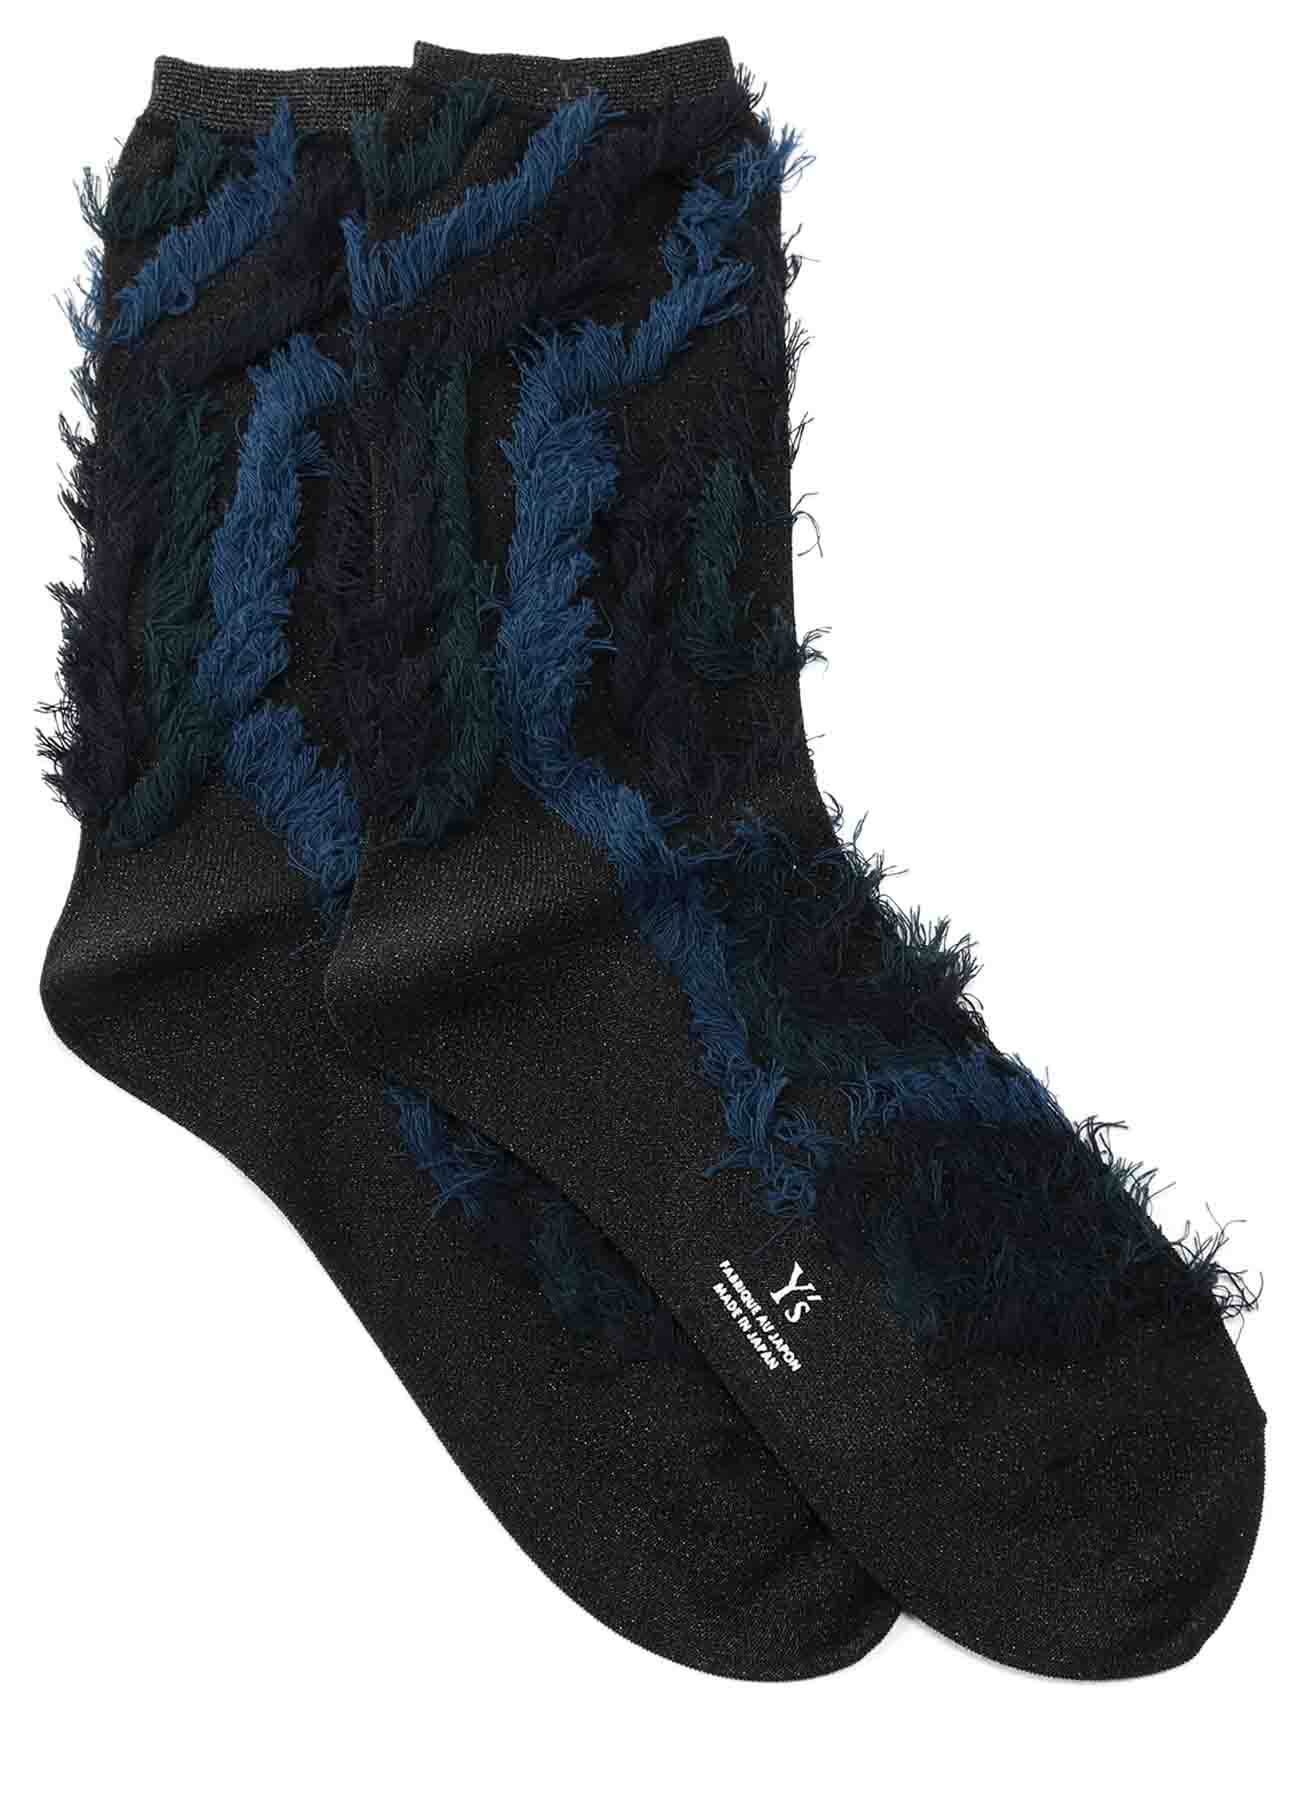 REVERSED CUT VARNISH POLY FRINGE SOCKS